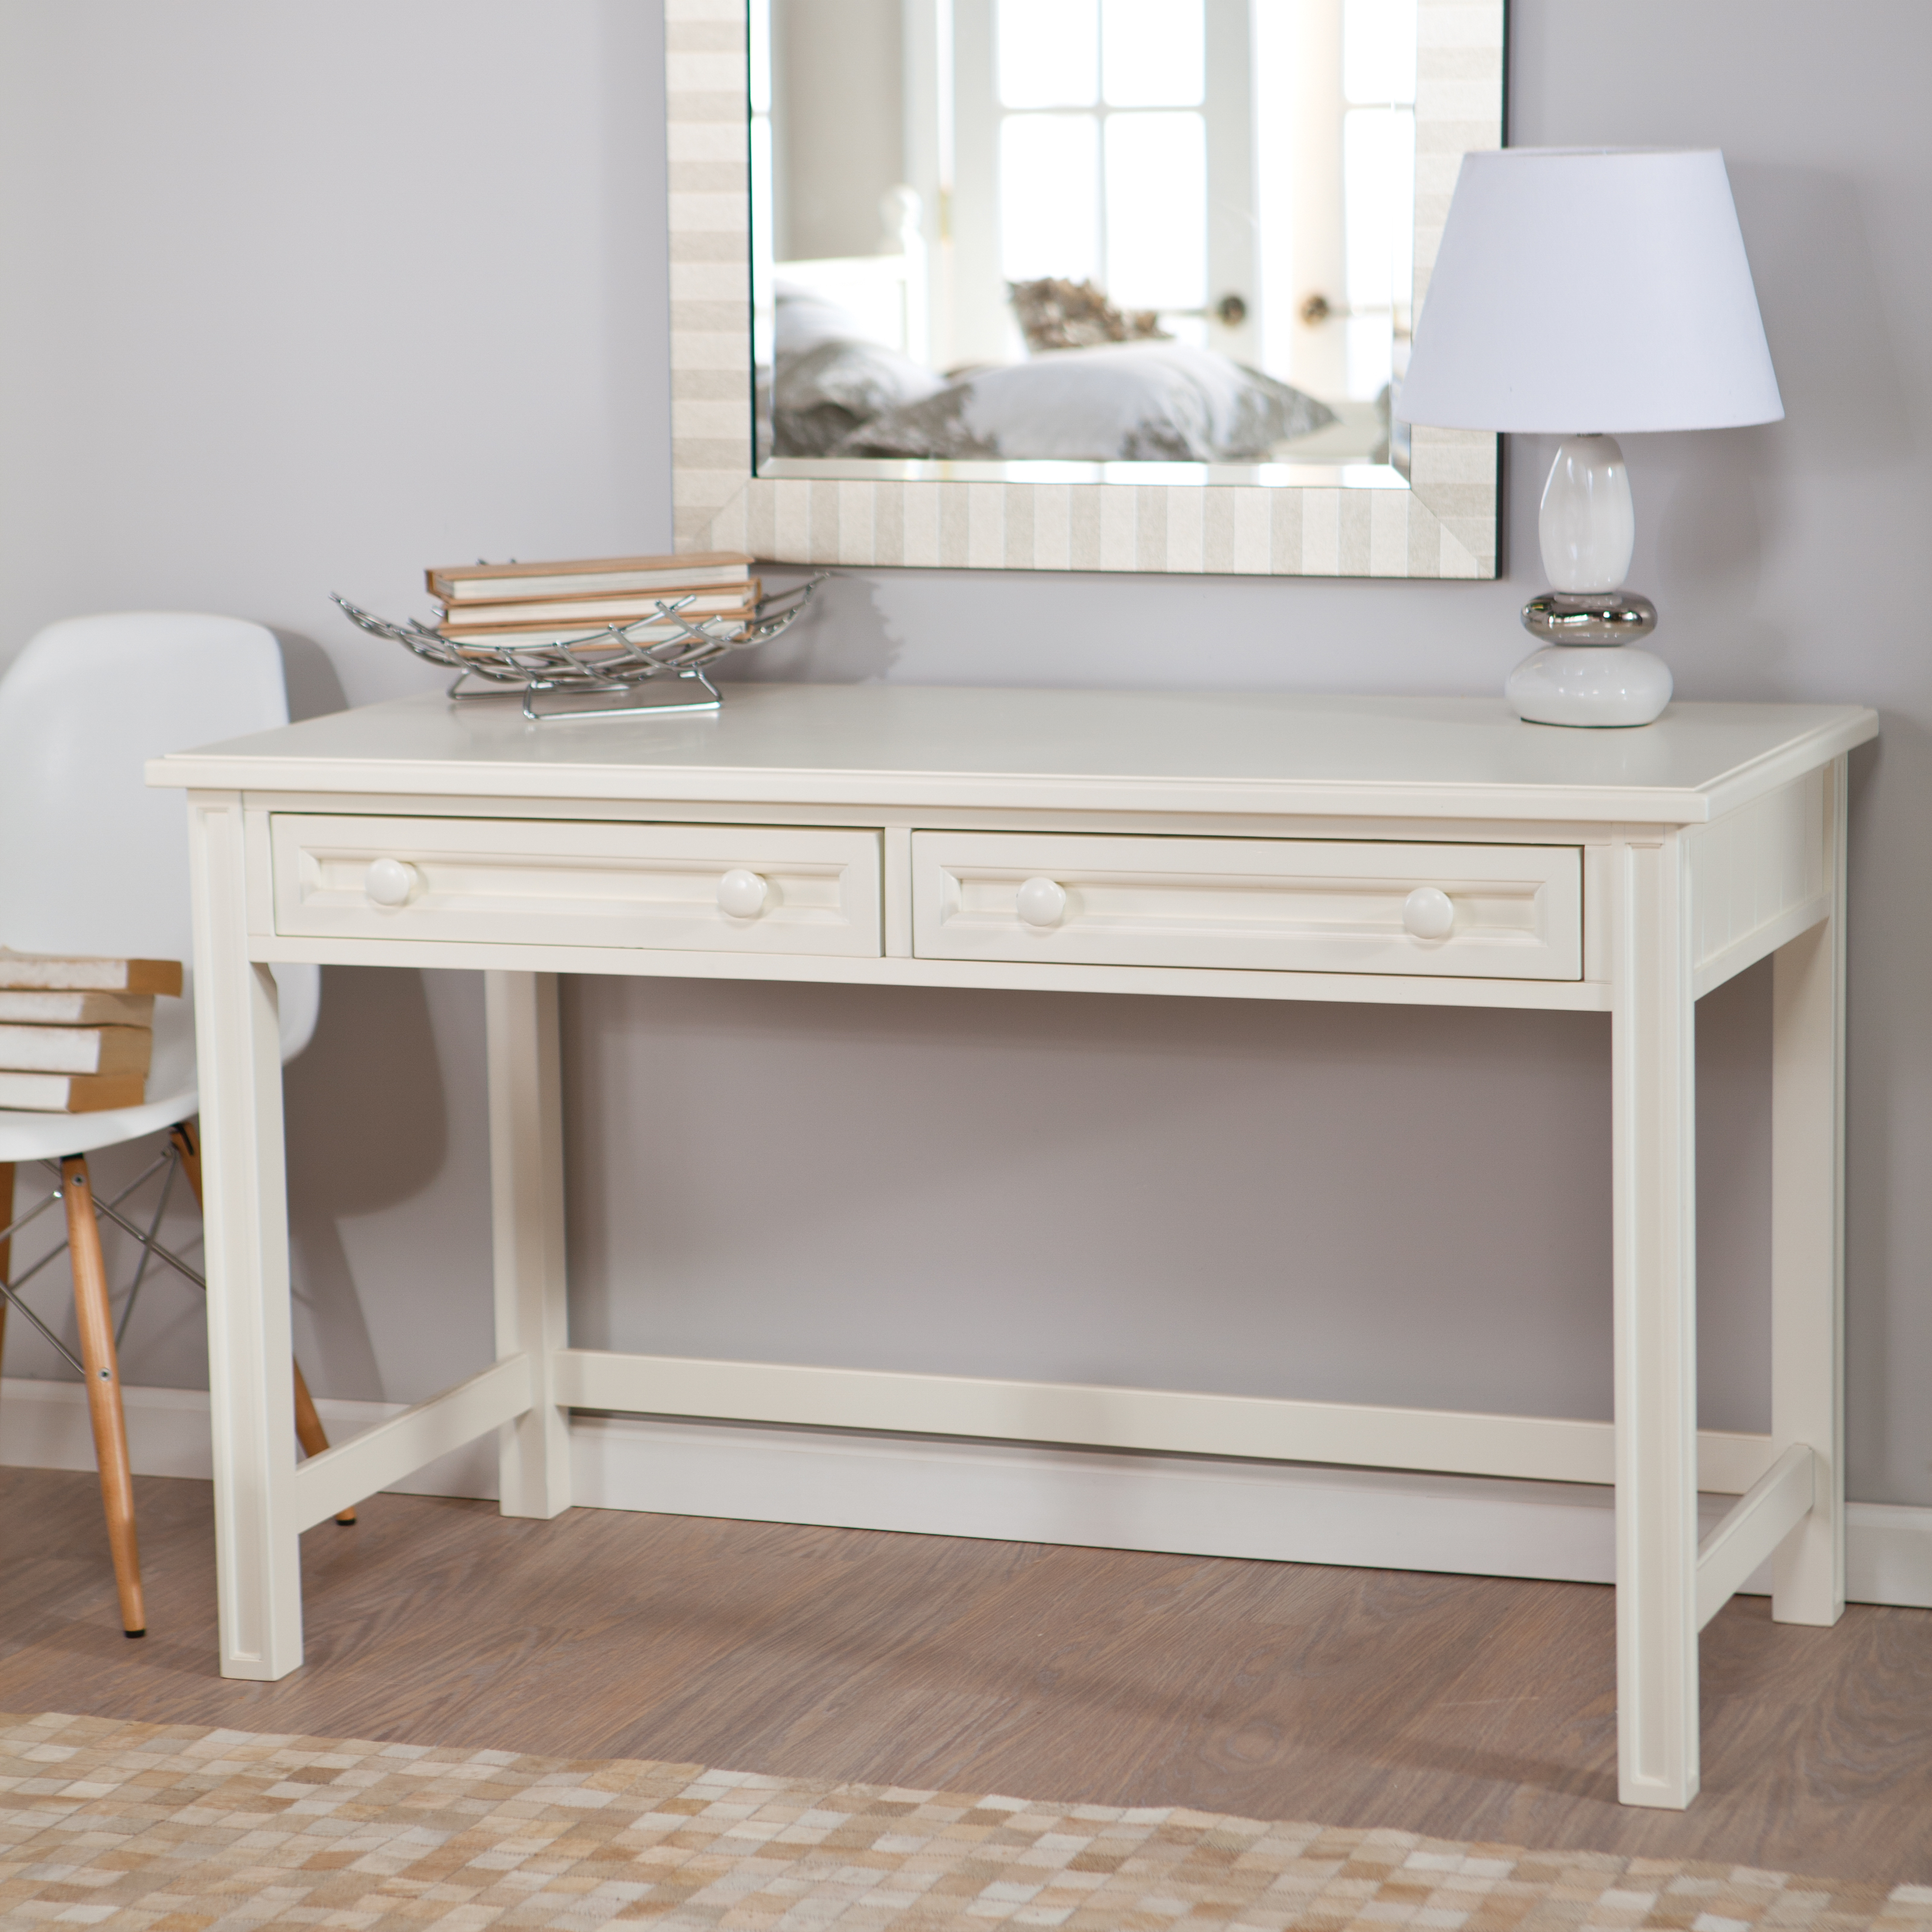 Belham Living Casey White Bedroom Vanity | Hayneedle